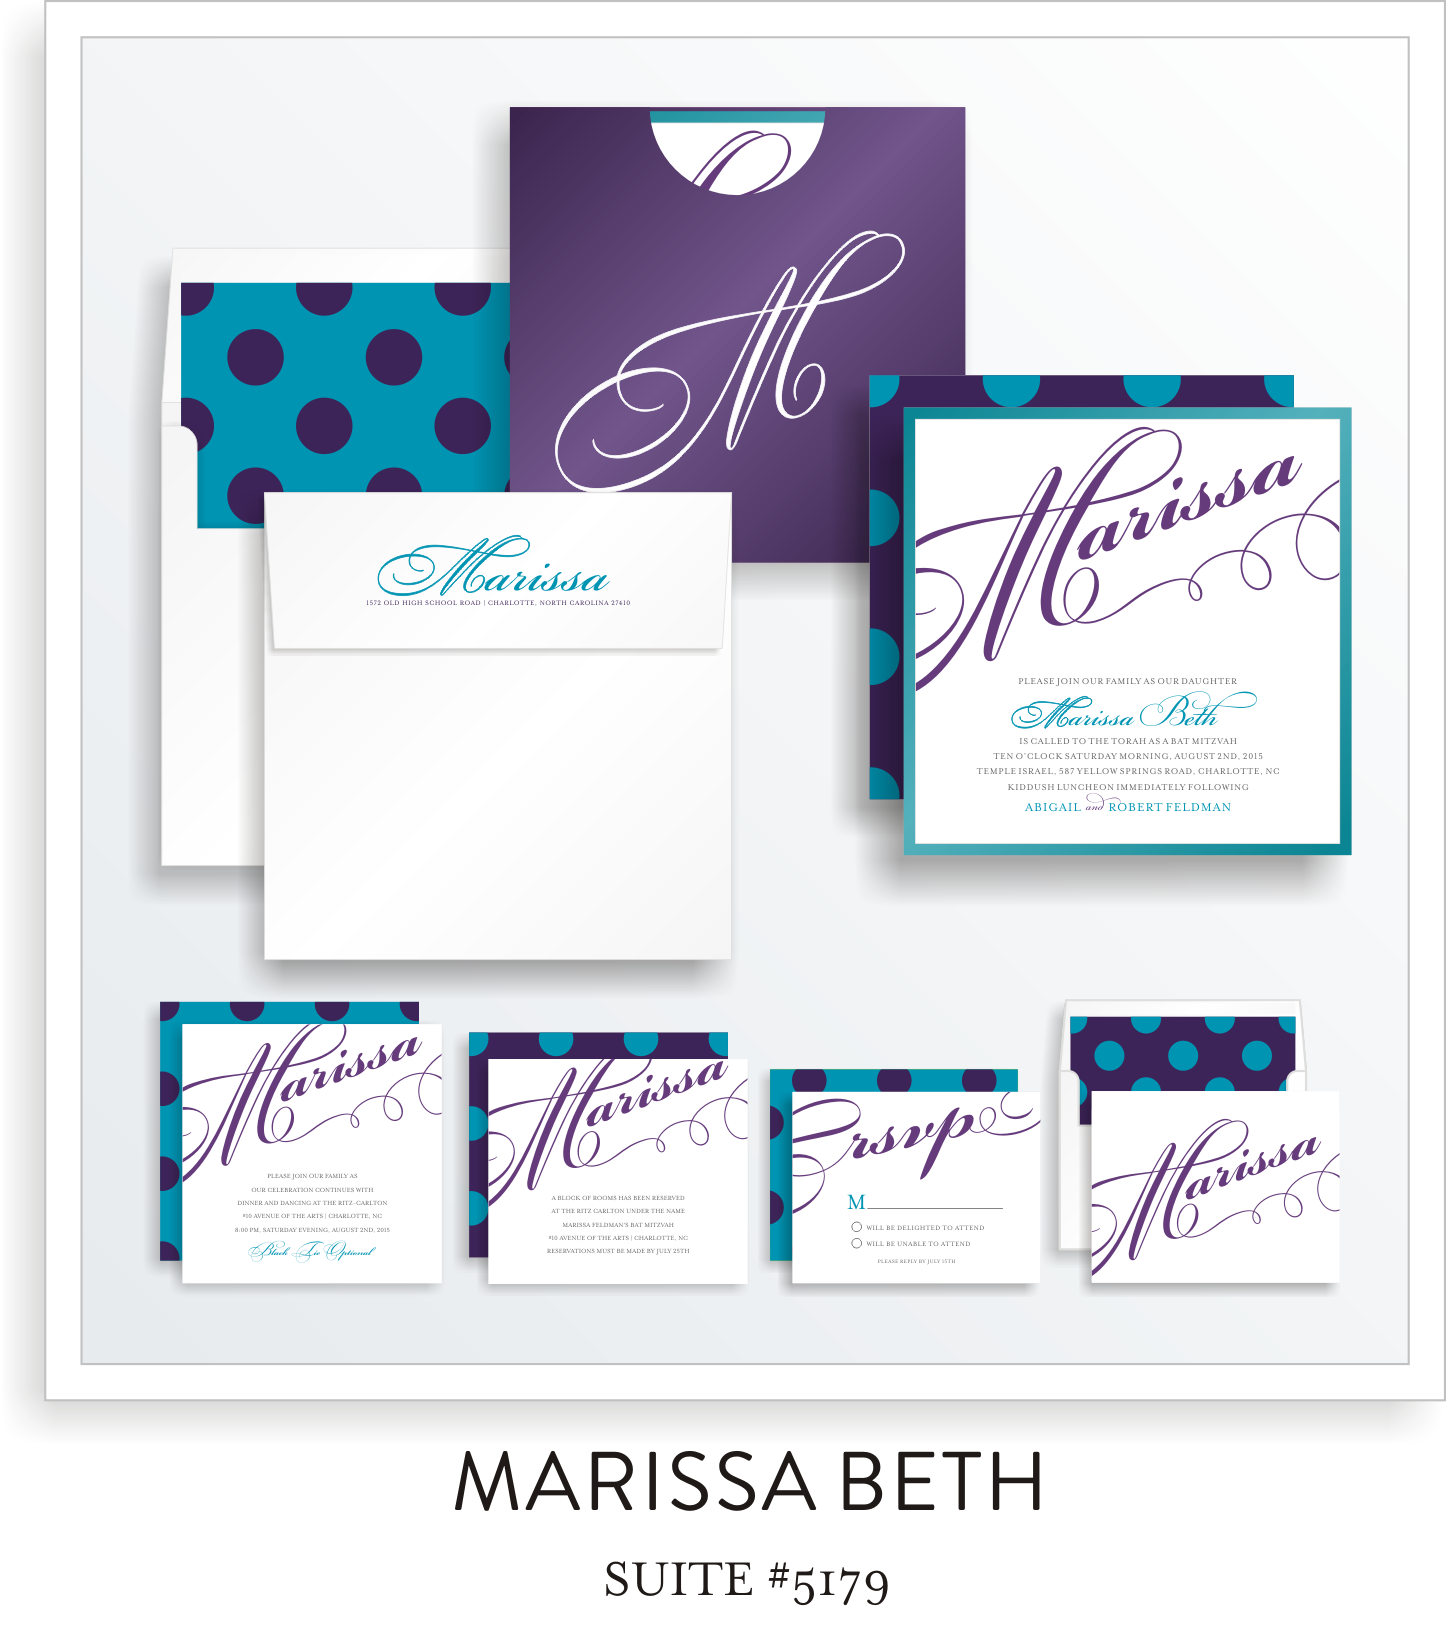 Copy of Bat Mitzvah Invitation Suite 5179 - Marissa Beth